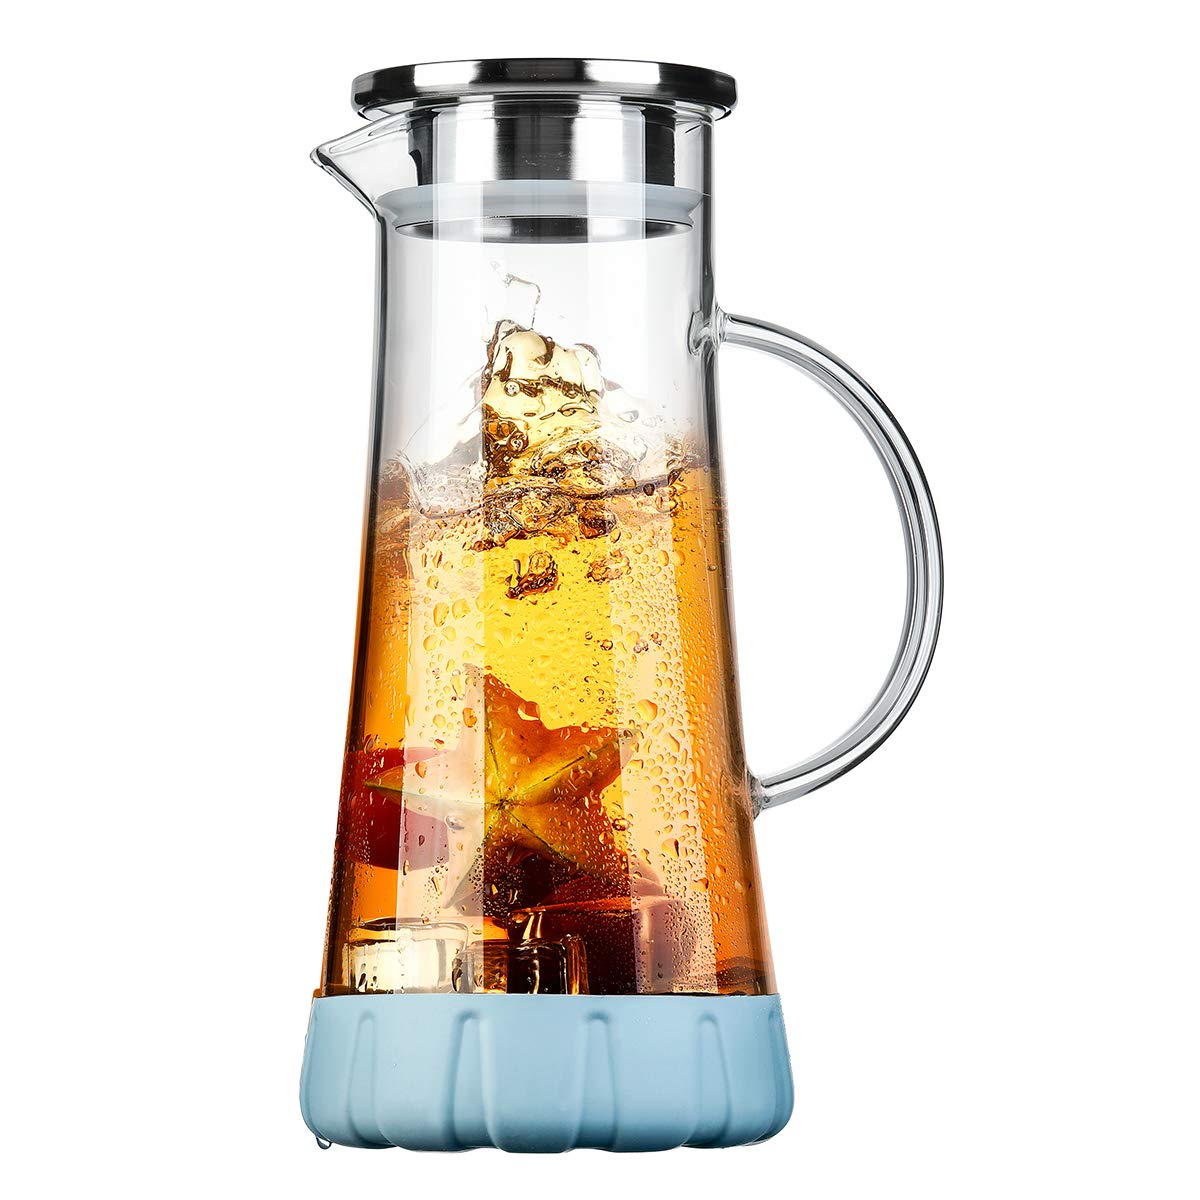 BOQO Glass Water Pitcher,50 Oz Carafe with Lid,Glass Water Jug with Particular Coaster and Brush,Glass Water Jar